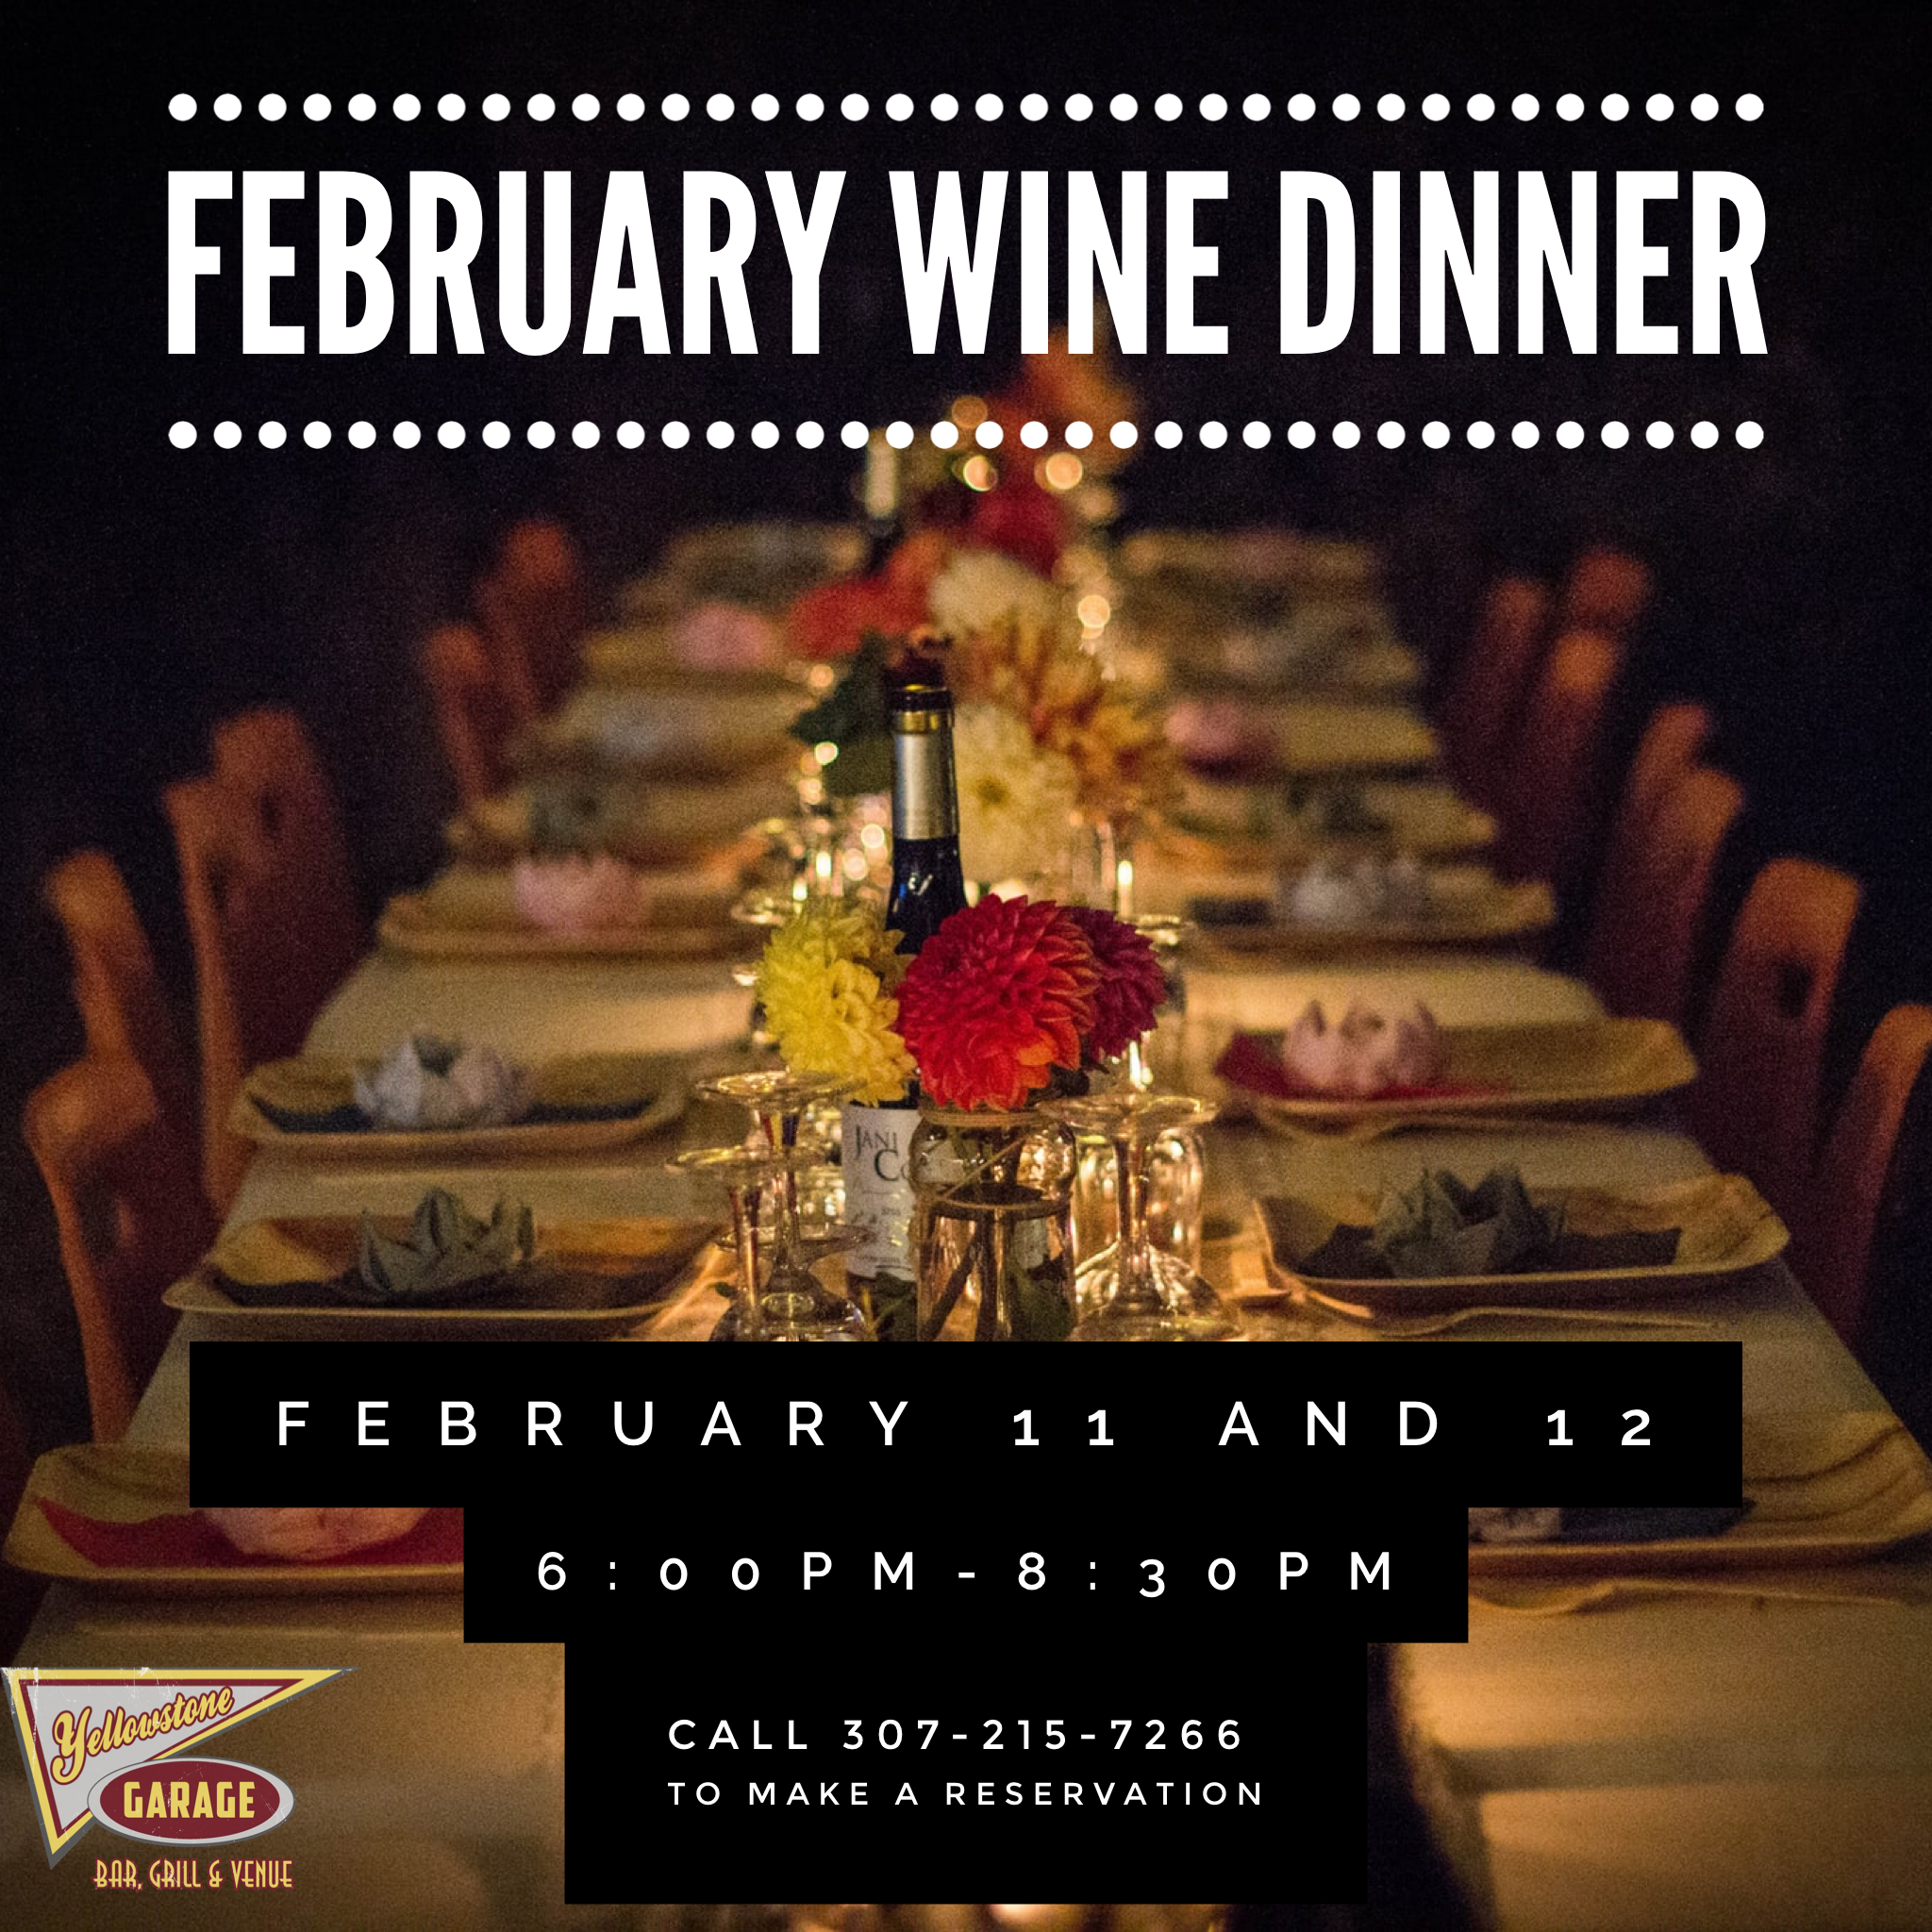 February Wine Dinner. February 11th and 12th 6pm - 8:30pm. Call 307-215-7266 to make a reservation